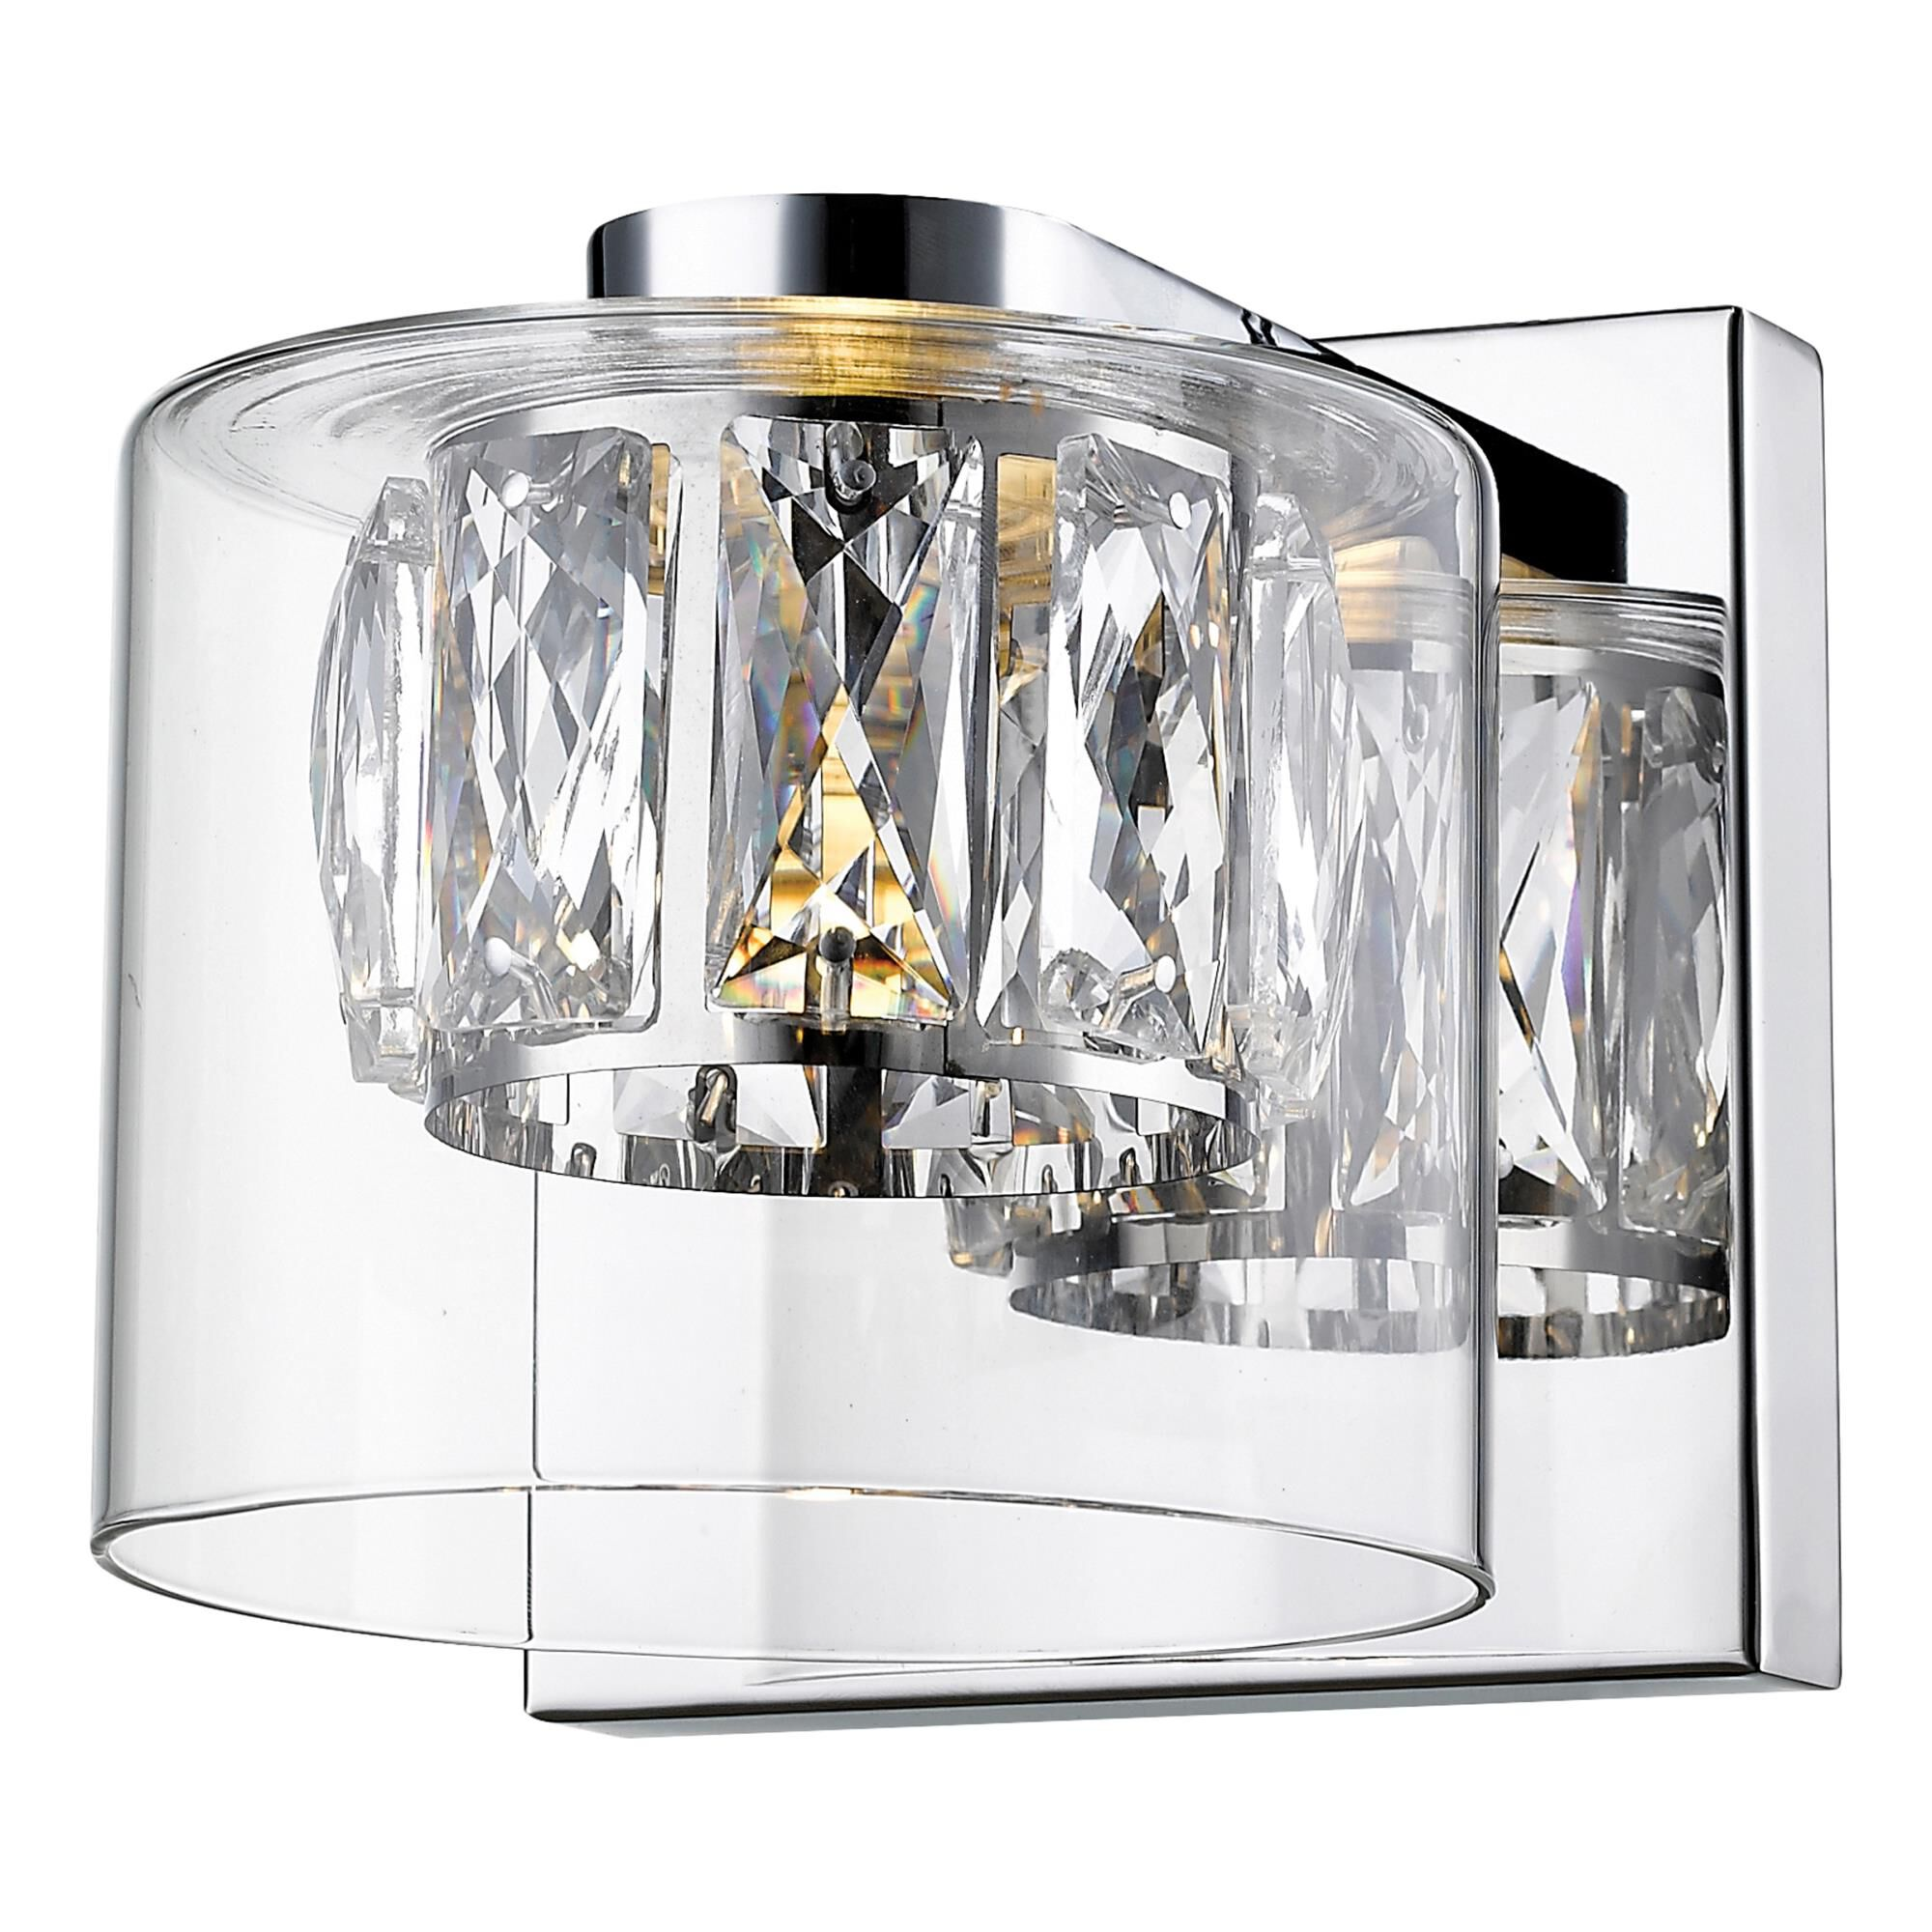 Access Lighting Private Collection 4 Inch 1 Light LED Bath Vanity Light Private Collection 62555LEDD MSSCCLCLR Crystal